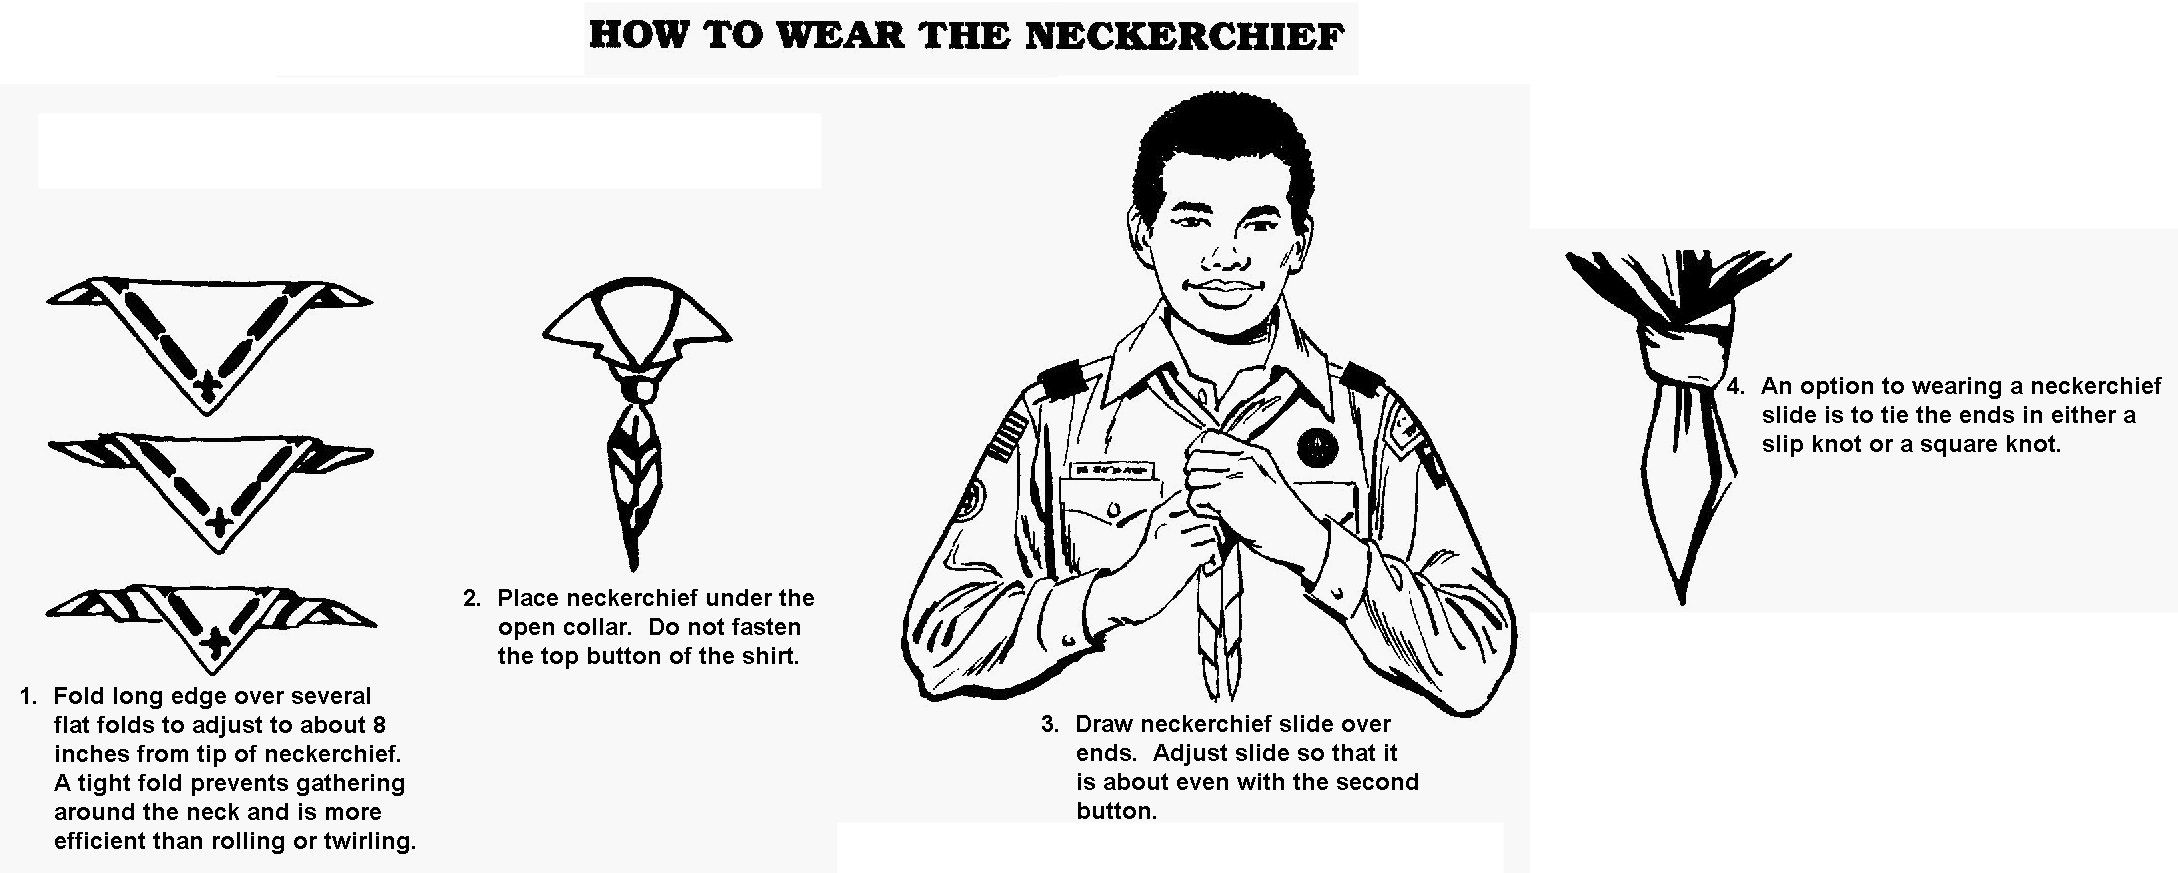 Scouts cub neckerchief how to wear photos